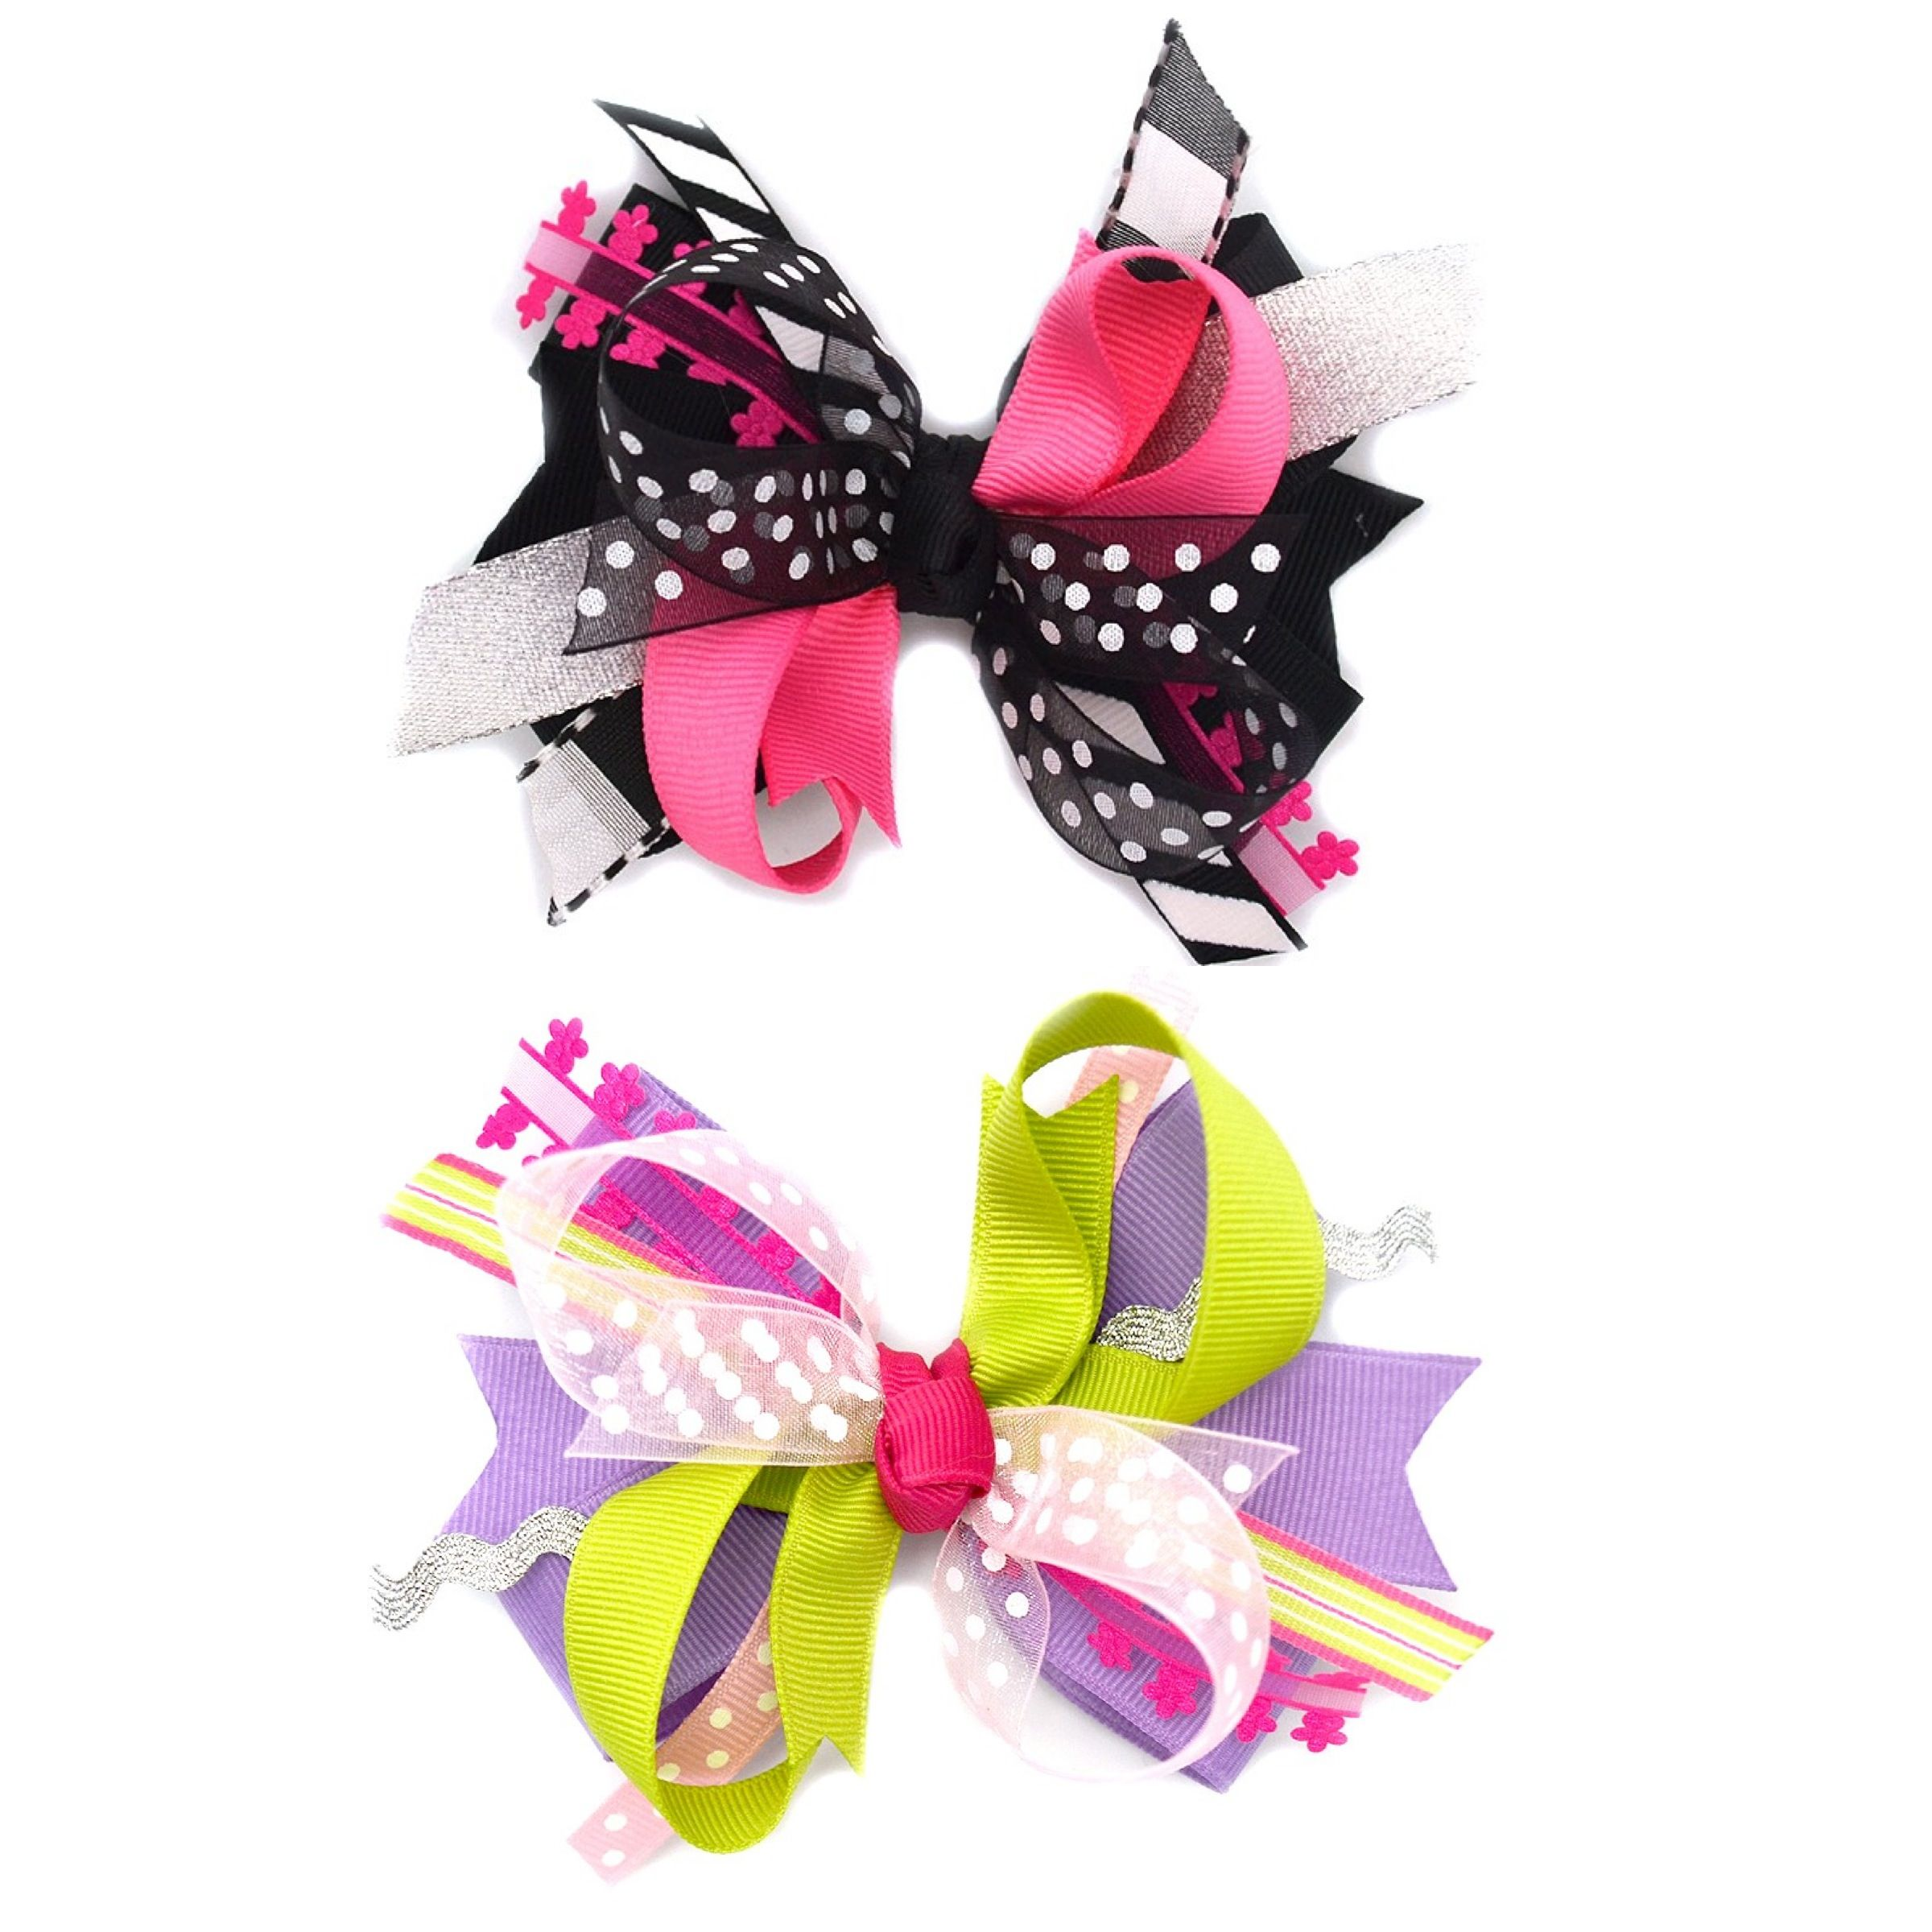 Fun layered bows from katelyn u co so cute i need them all girls